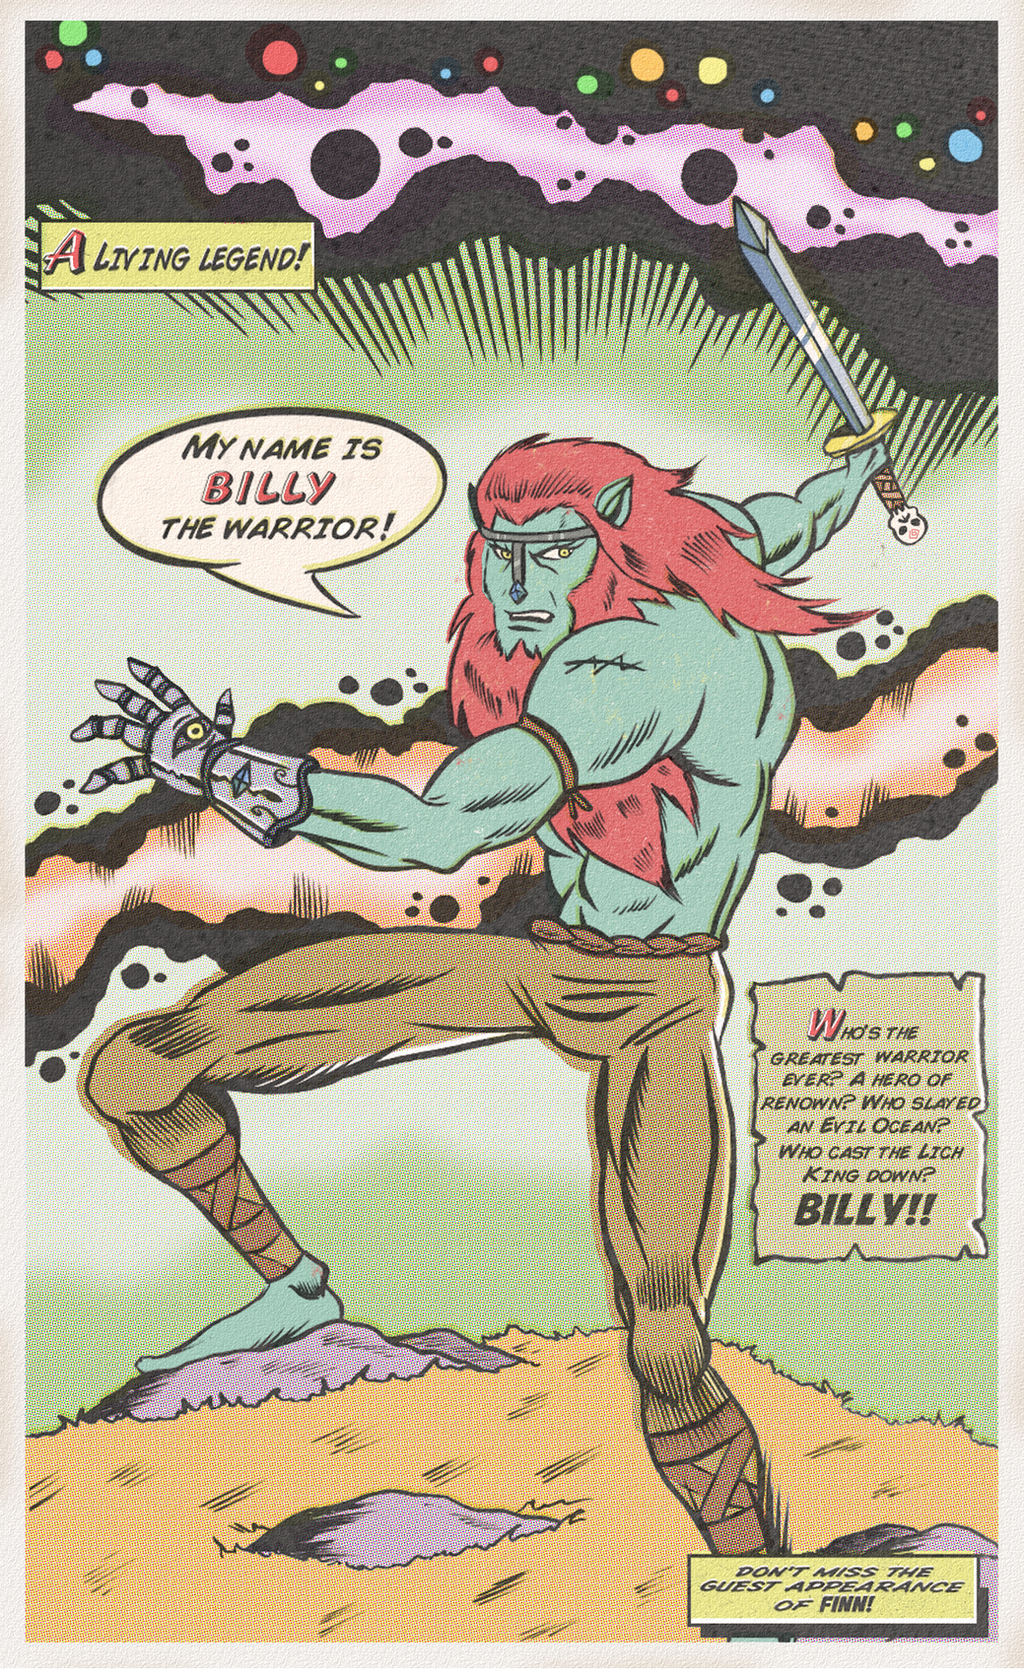 BILLY THE WARRIOR by paintmarvels